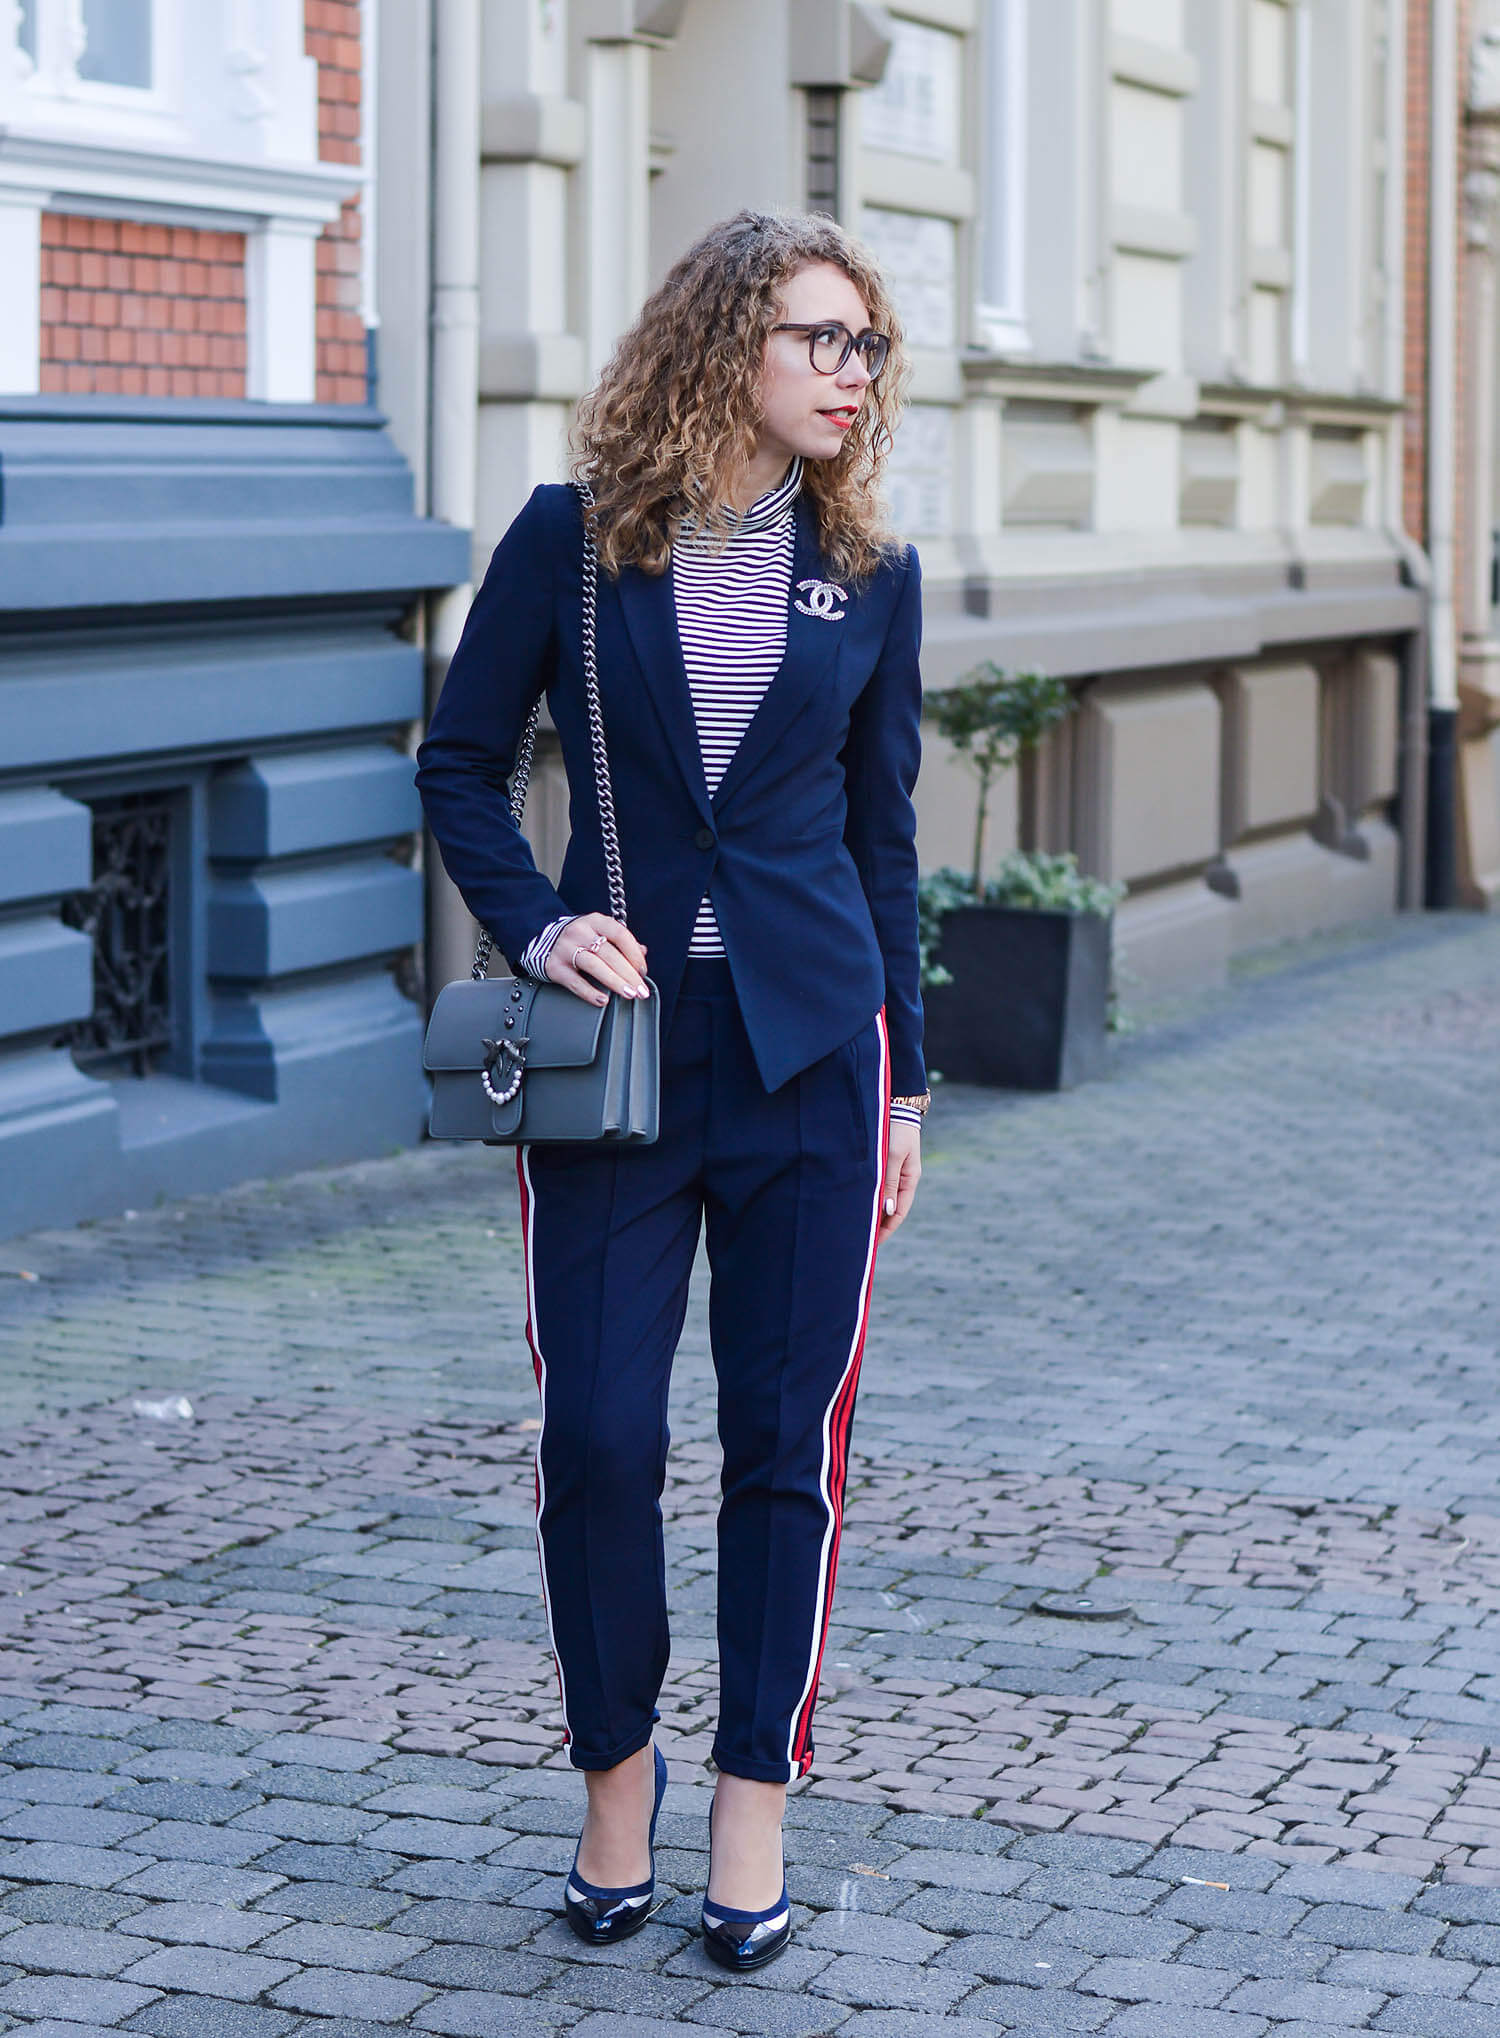 Outfit-How-to-style-Track-Pants-in-an-elegant-Way-with-Blazer-and-High-Heels-kationette-fashionblogger-nrw